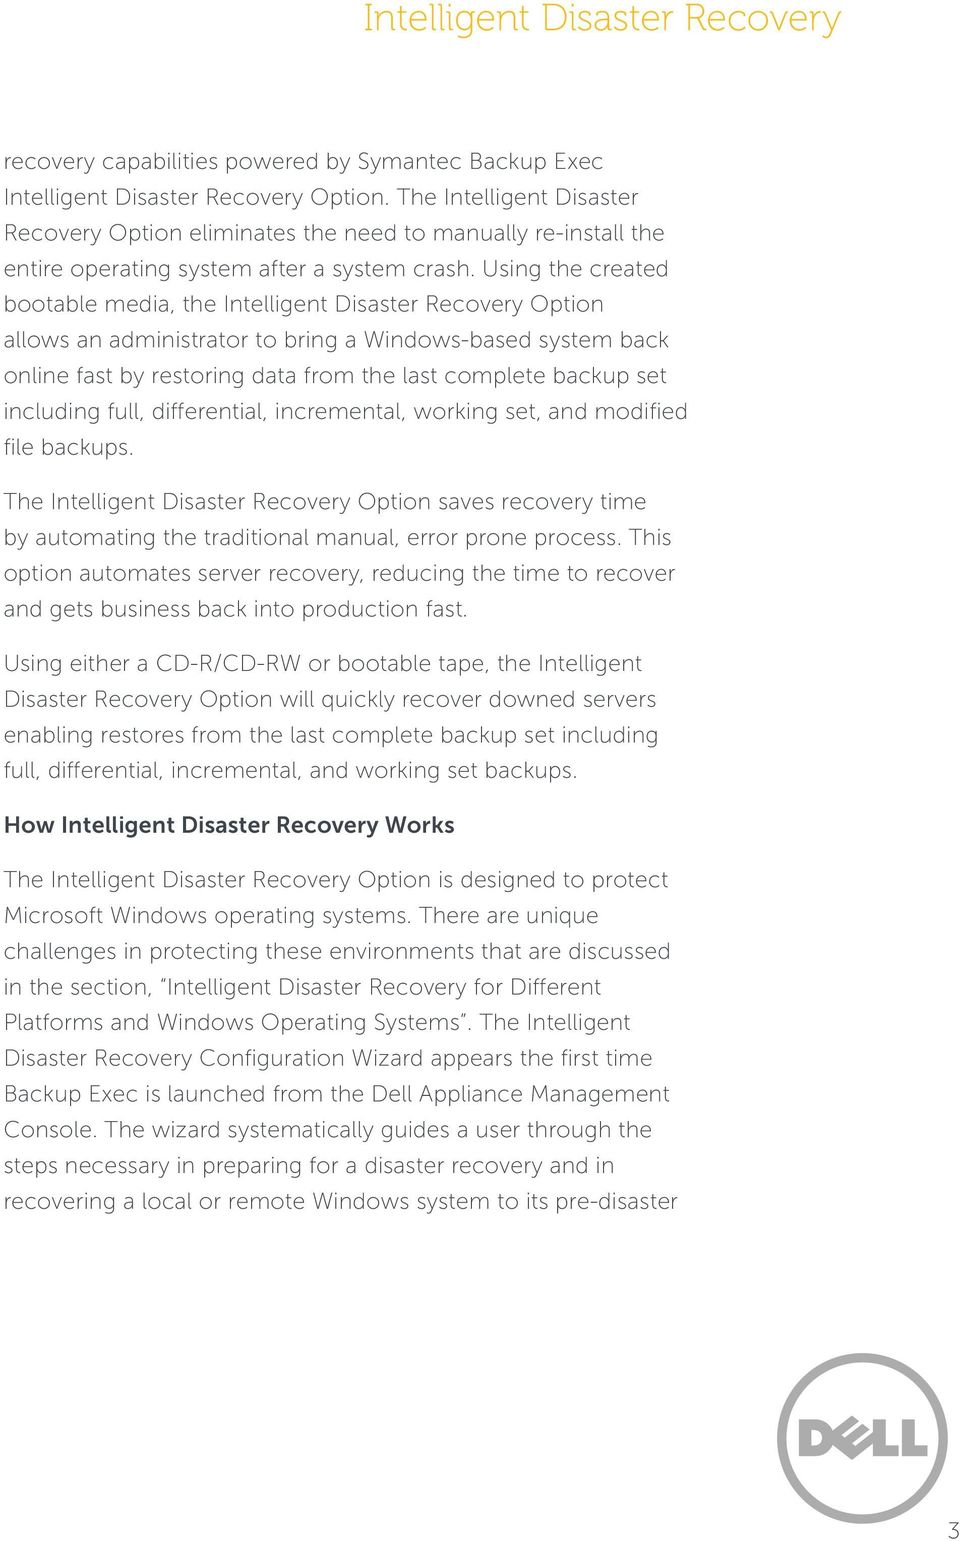 Using the created bootable media, the Intelligent Disaster Recovery Option allows an administrator to bring a Windows-based system back online fast by restoring data from the last complete backup set